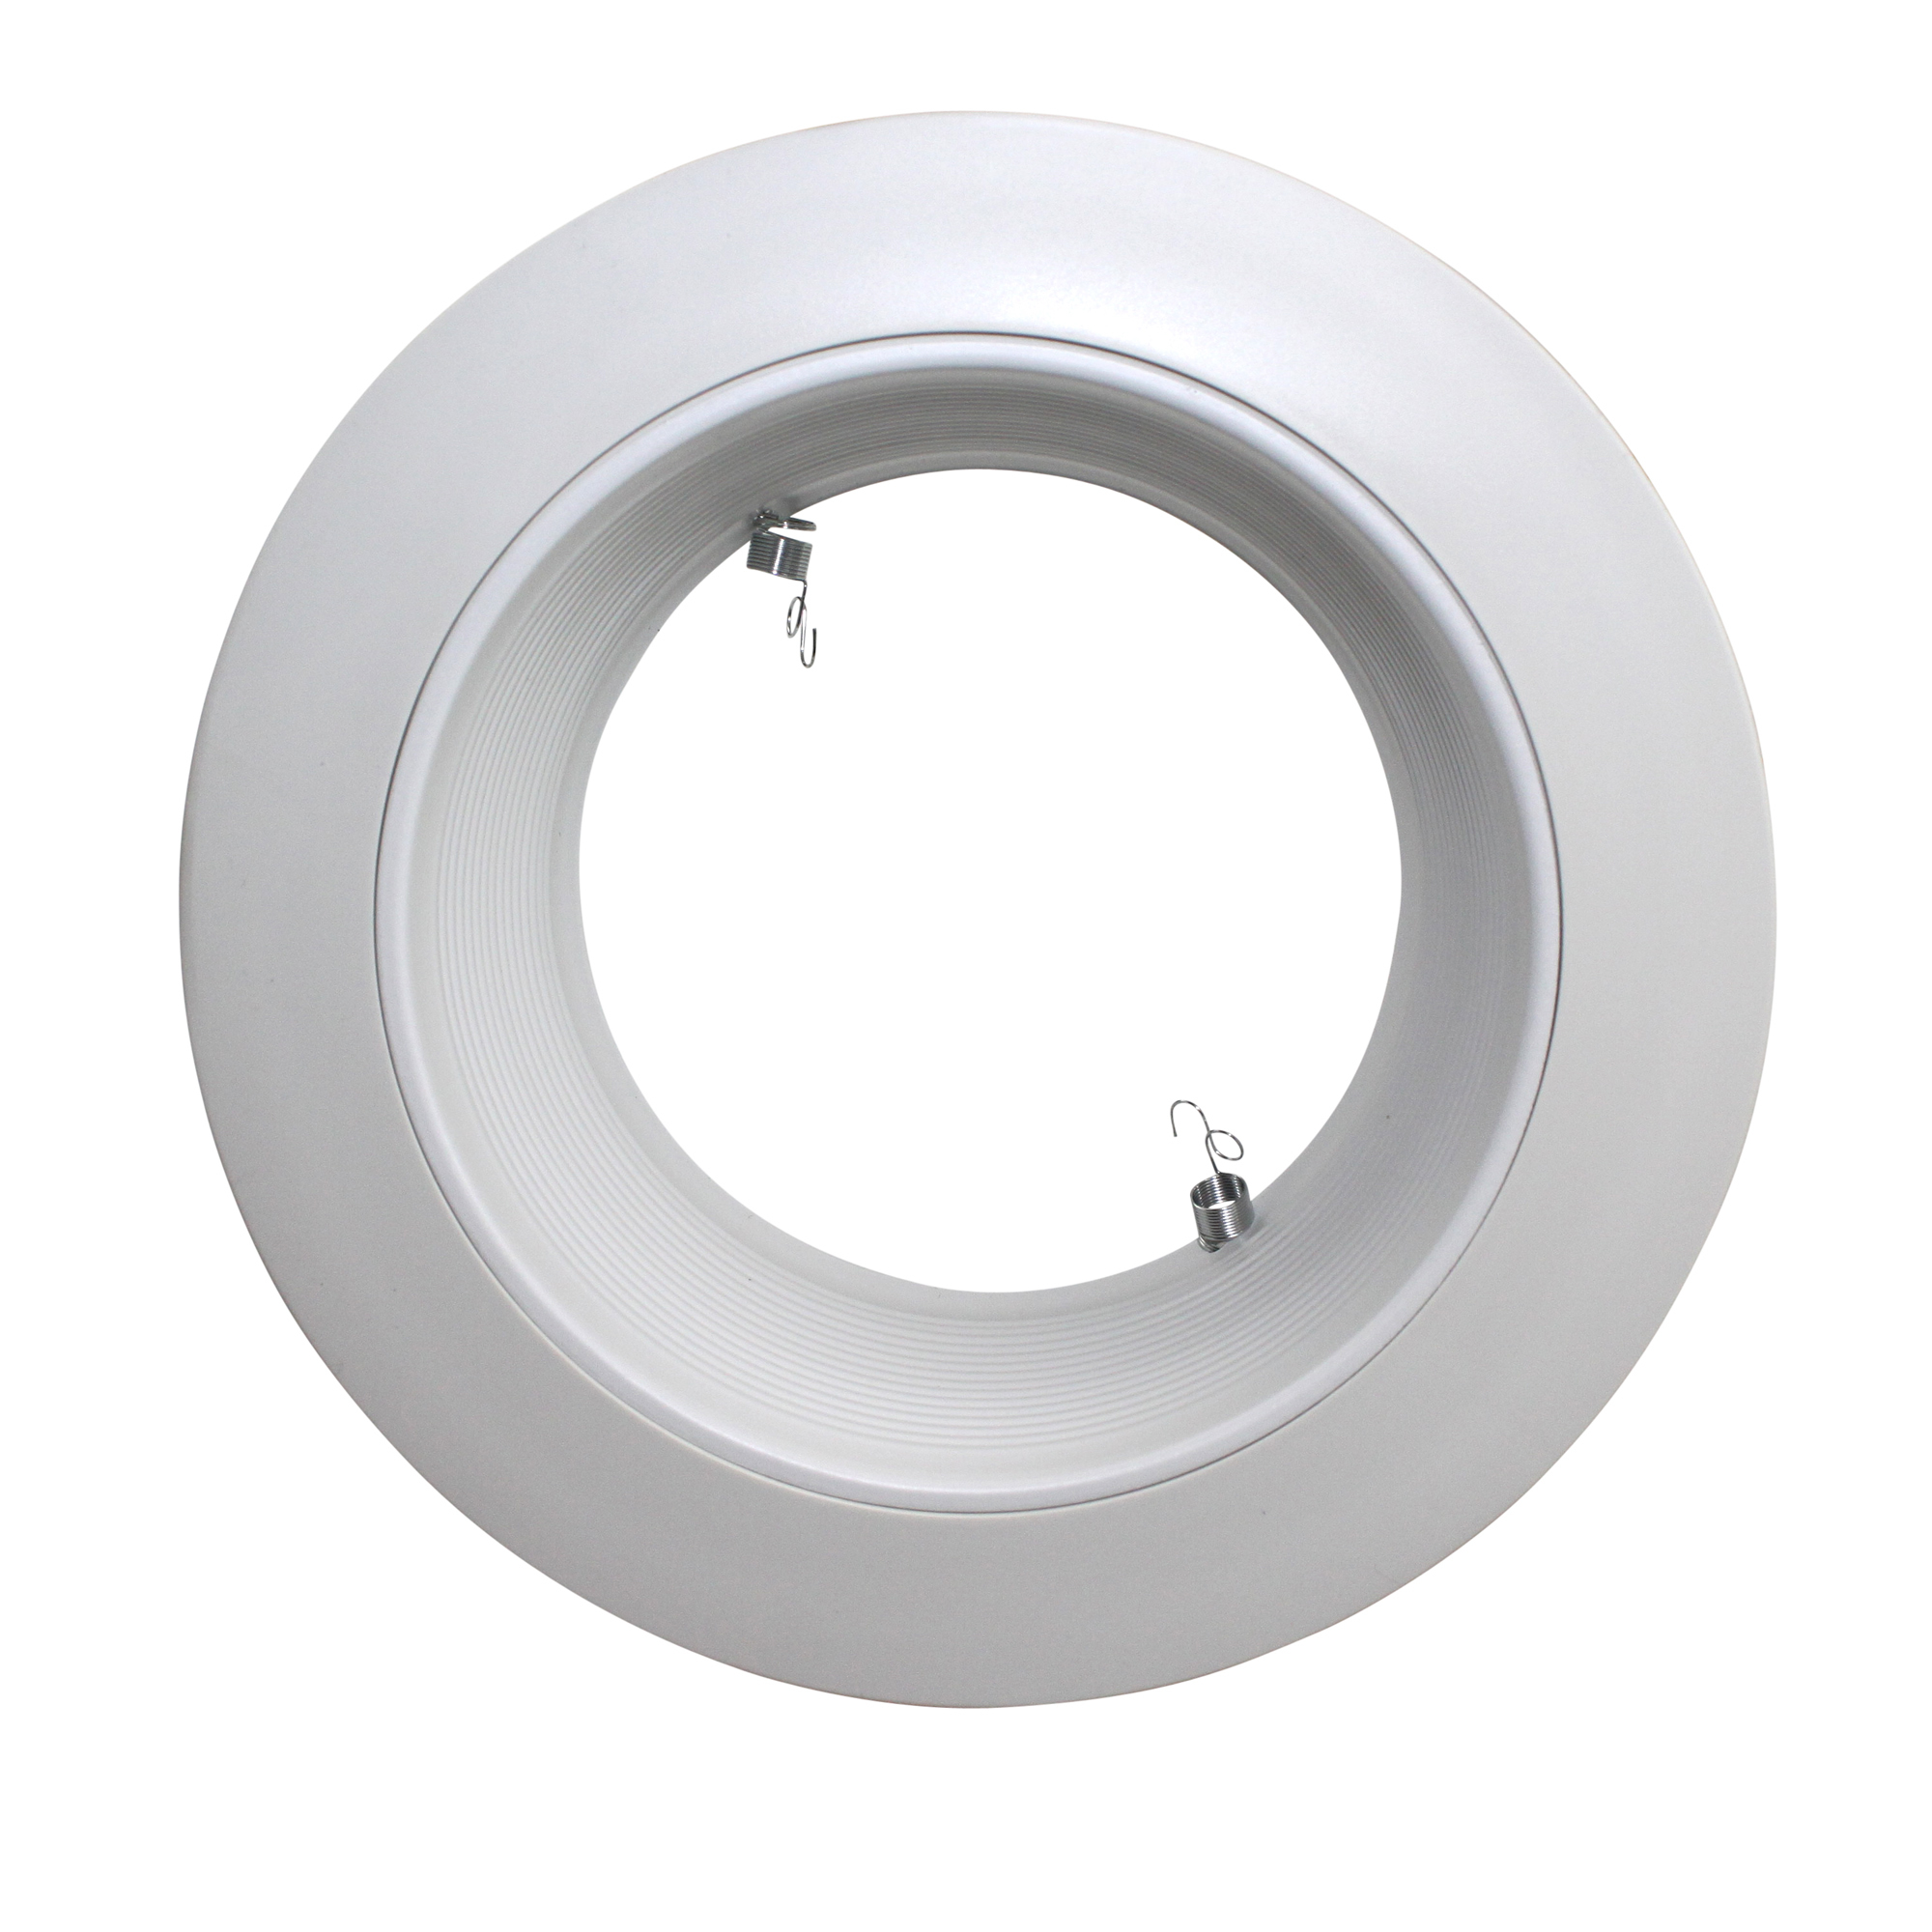 Capri lighting rm40wov 6 white baffle trim with ring for Number of recessed lights per room